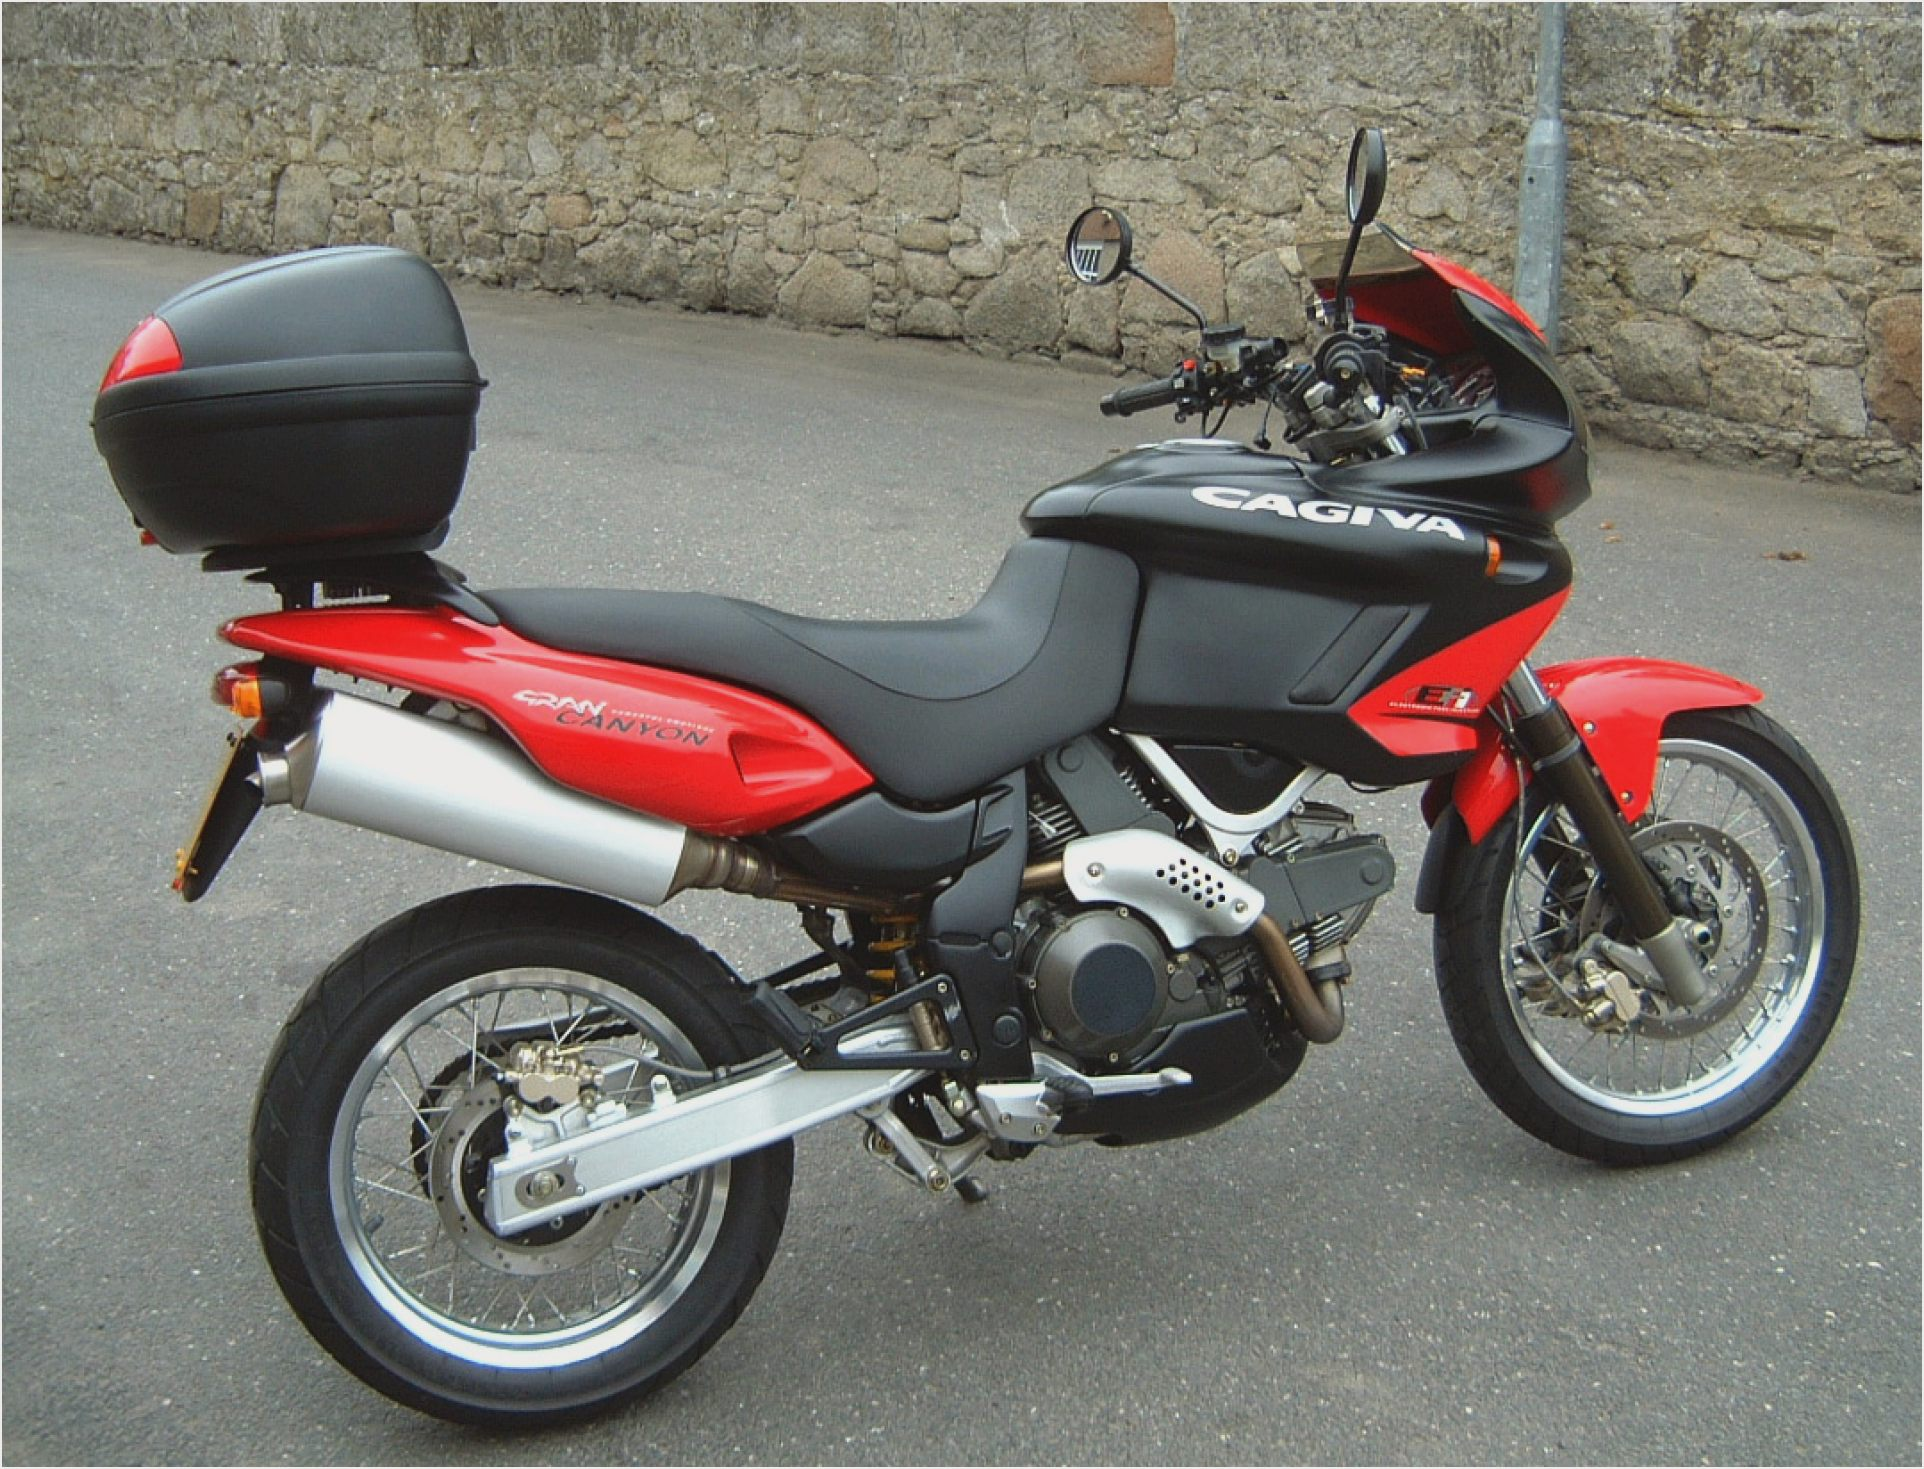 Cagiva Grand Canyon 1998 images #67466